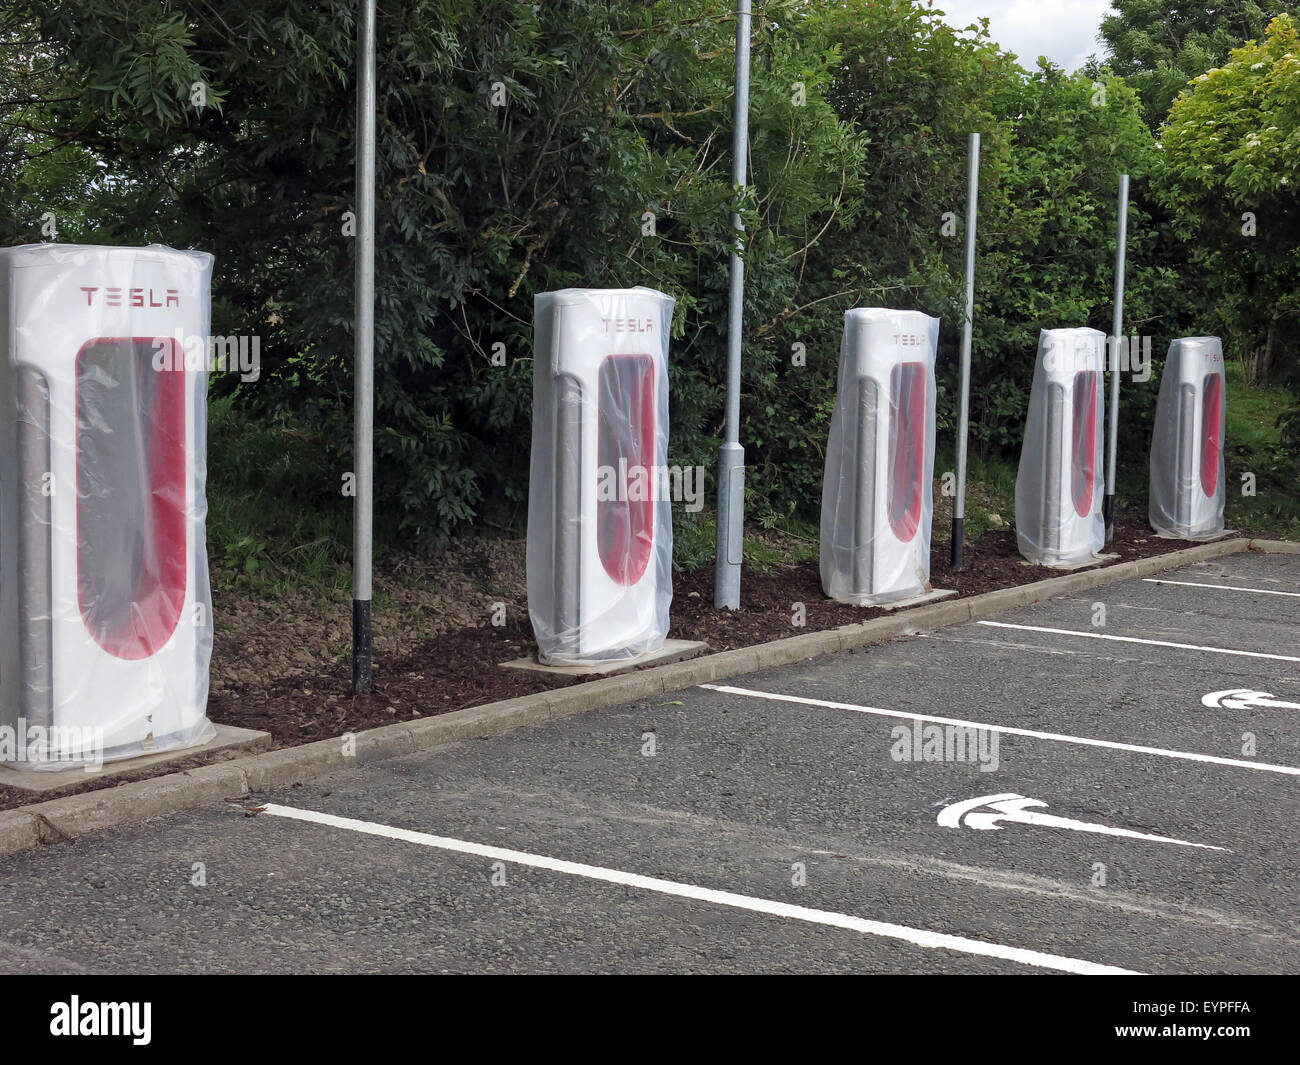 electric,car,cars,charger,chargers,area,motorway,service,area,in,the,UK,GB,Europe,eco,battery,powered,quick,station,electric,super,supercharge,supercharging,tesla,transport,transportation,united,us,USA,vehicle,M1,M2,M3,M4,M5,Electric car,United Kingdom,Great Britain,charging station,gotonysmith,sued,fight,rollout,highway,rest,stops,Moto,welcome,break,British,English,Scottish,Hybrid,Ecotricity,Group,providers,Antitrust,claim,Anti-trust,anti,trust,Tech,Vehicles,Palo Alto,California,Energy,white,ready,to,be,installed,part,part-installed,logo,tarmac,M74,M9,M60,M61,M62,M42,M11,M18,M20,M23,M26,M27,M32,M40,M48,M49,M50,M53,M54,M55,M56,M58,M69,M73,M80,M90,M602,M606,A1M,GoTonySmith,buy pictures of,roll out,roll-out,Tesla Motors Inc,Highway Rest Stops,Welcome Break,U.K.,Electric-car,clean energy,Buy Pictures of,Buy Images Of